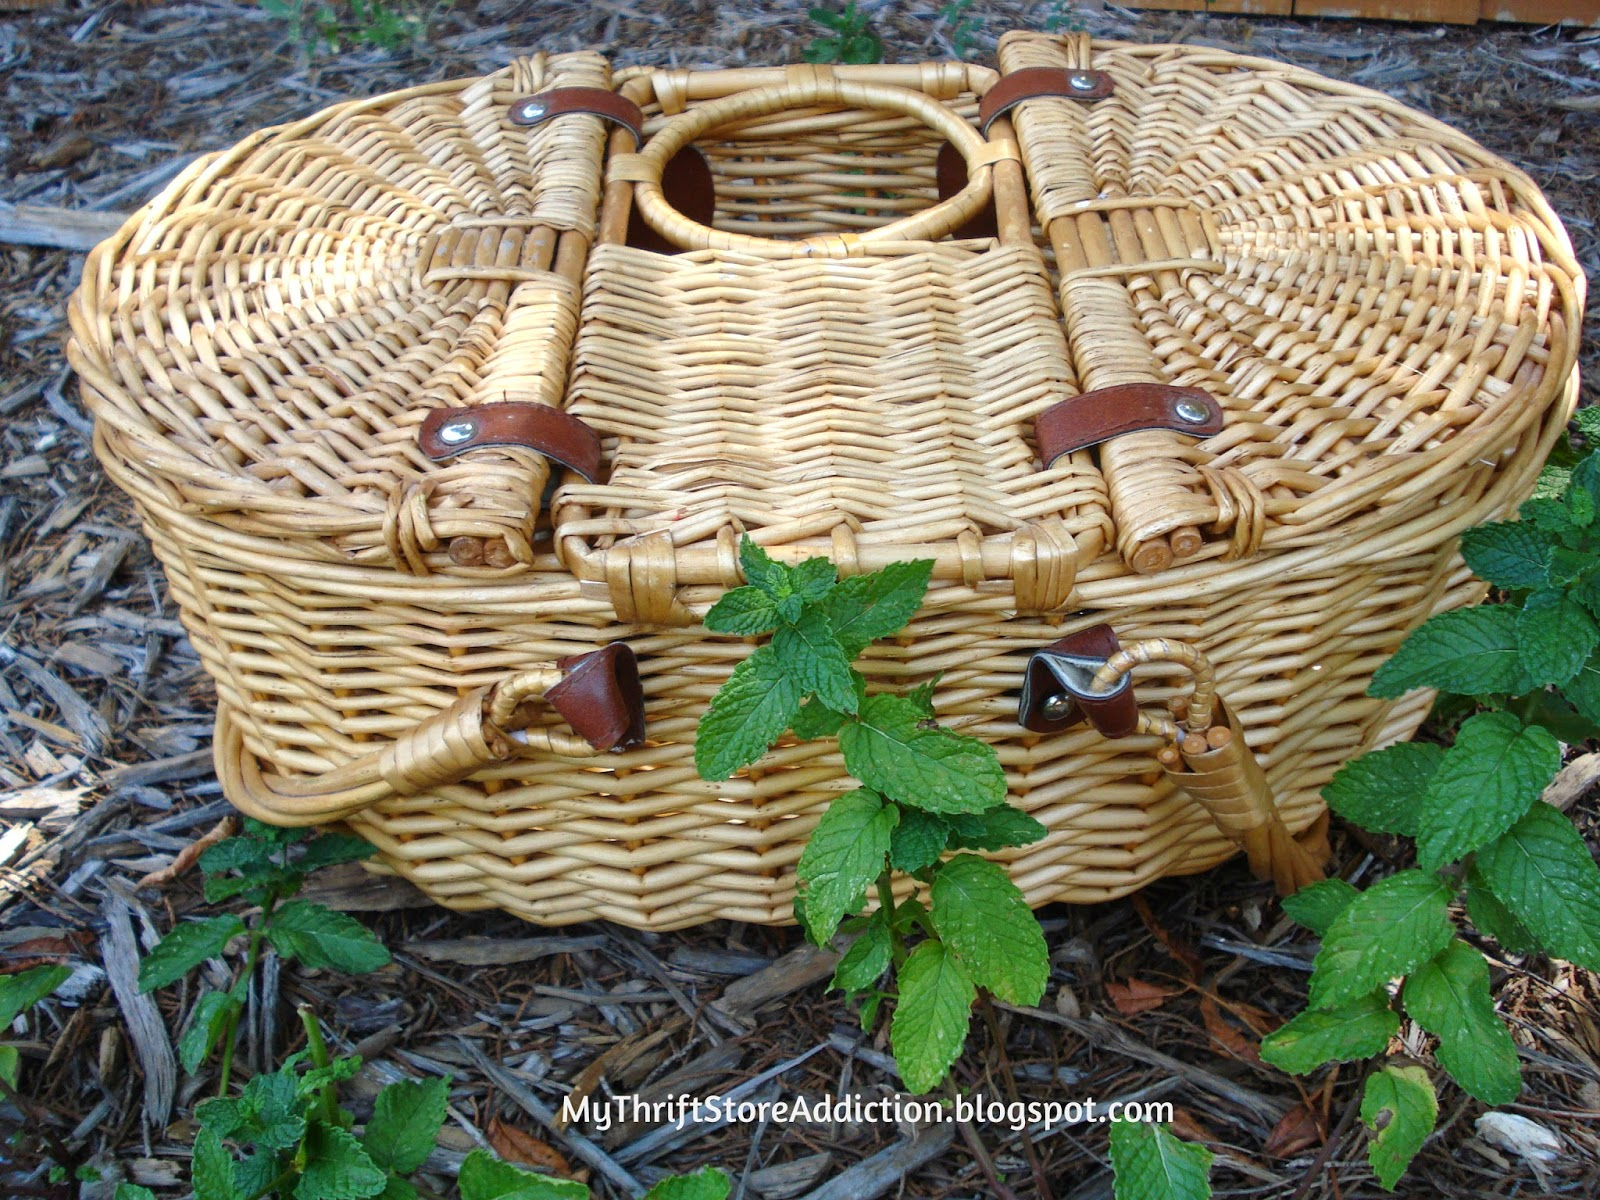 Yard sale picnic basket